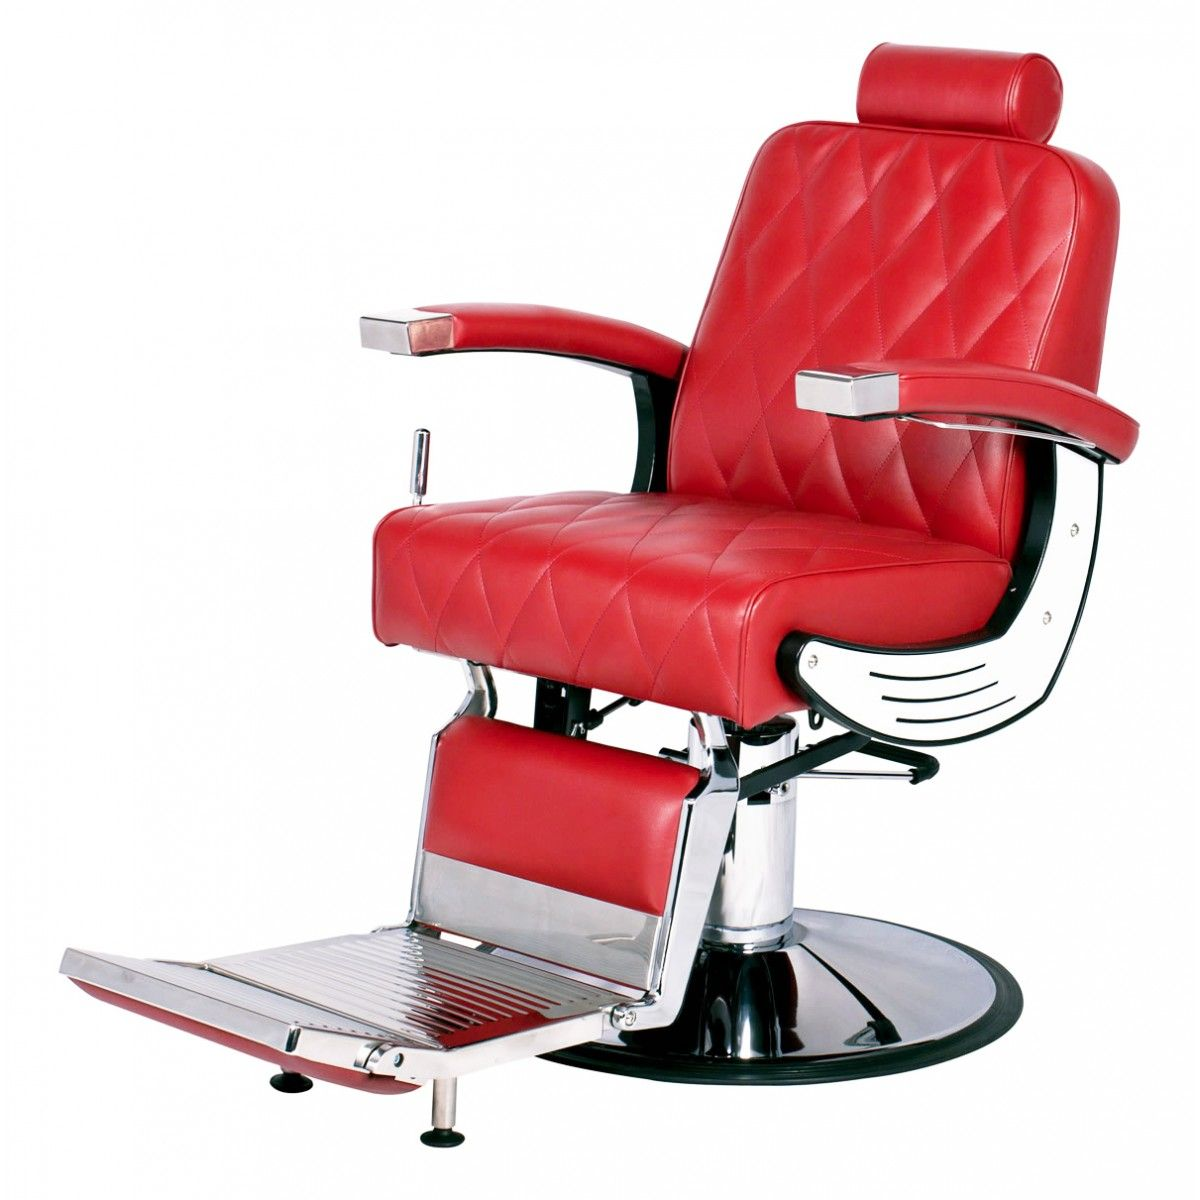 Ags Beauty Ags Barber Chairs Baron Barber Chair Barber